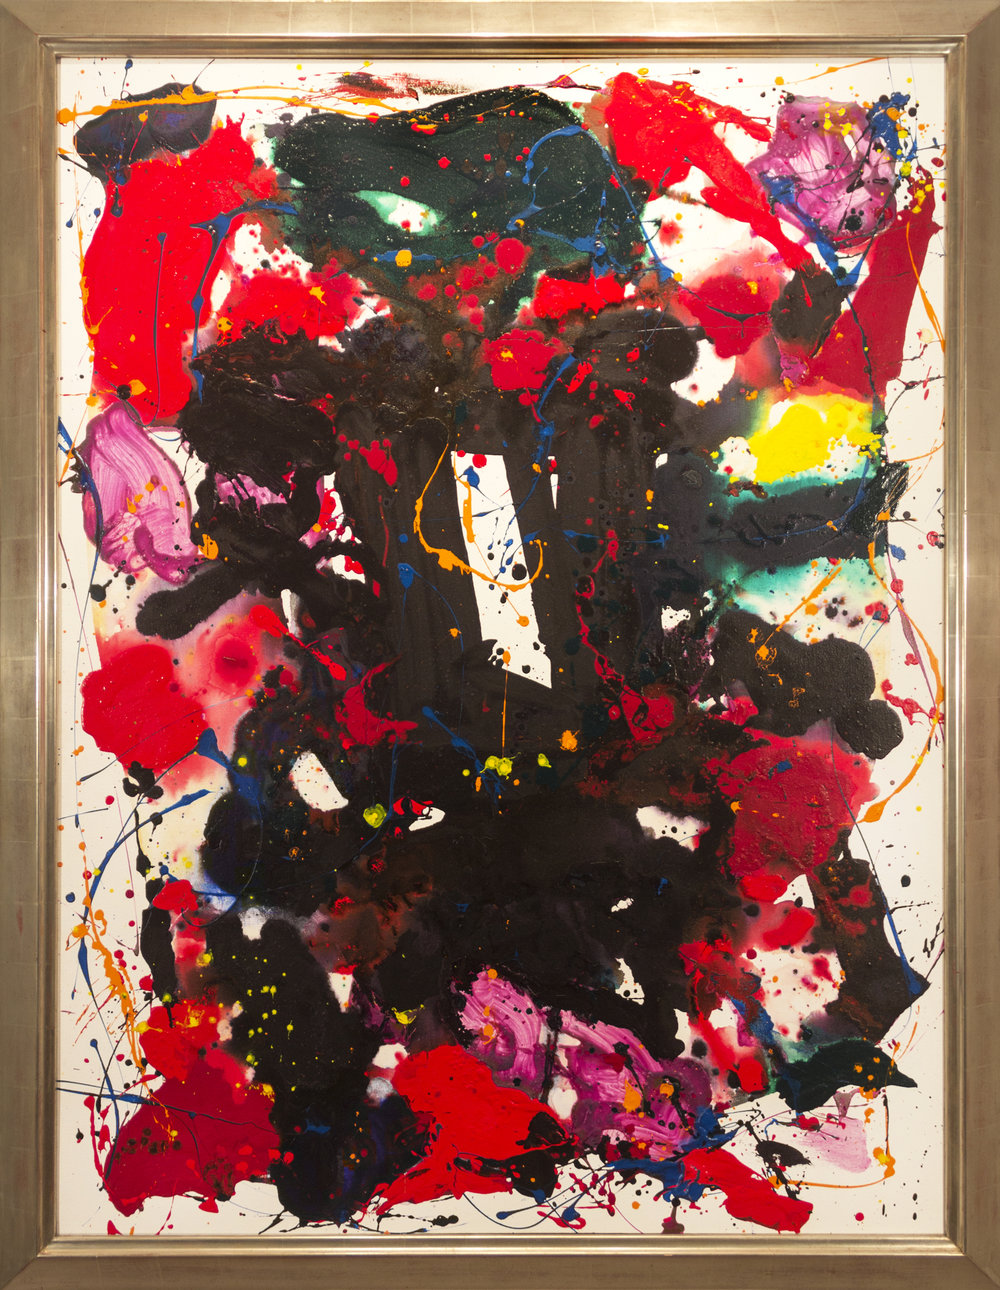 Sam Francis, Untitled, 1980, oil on canvas, 63 x 48 inches